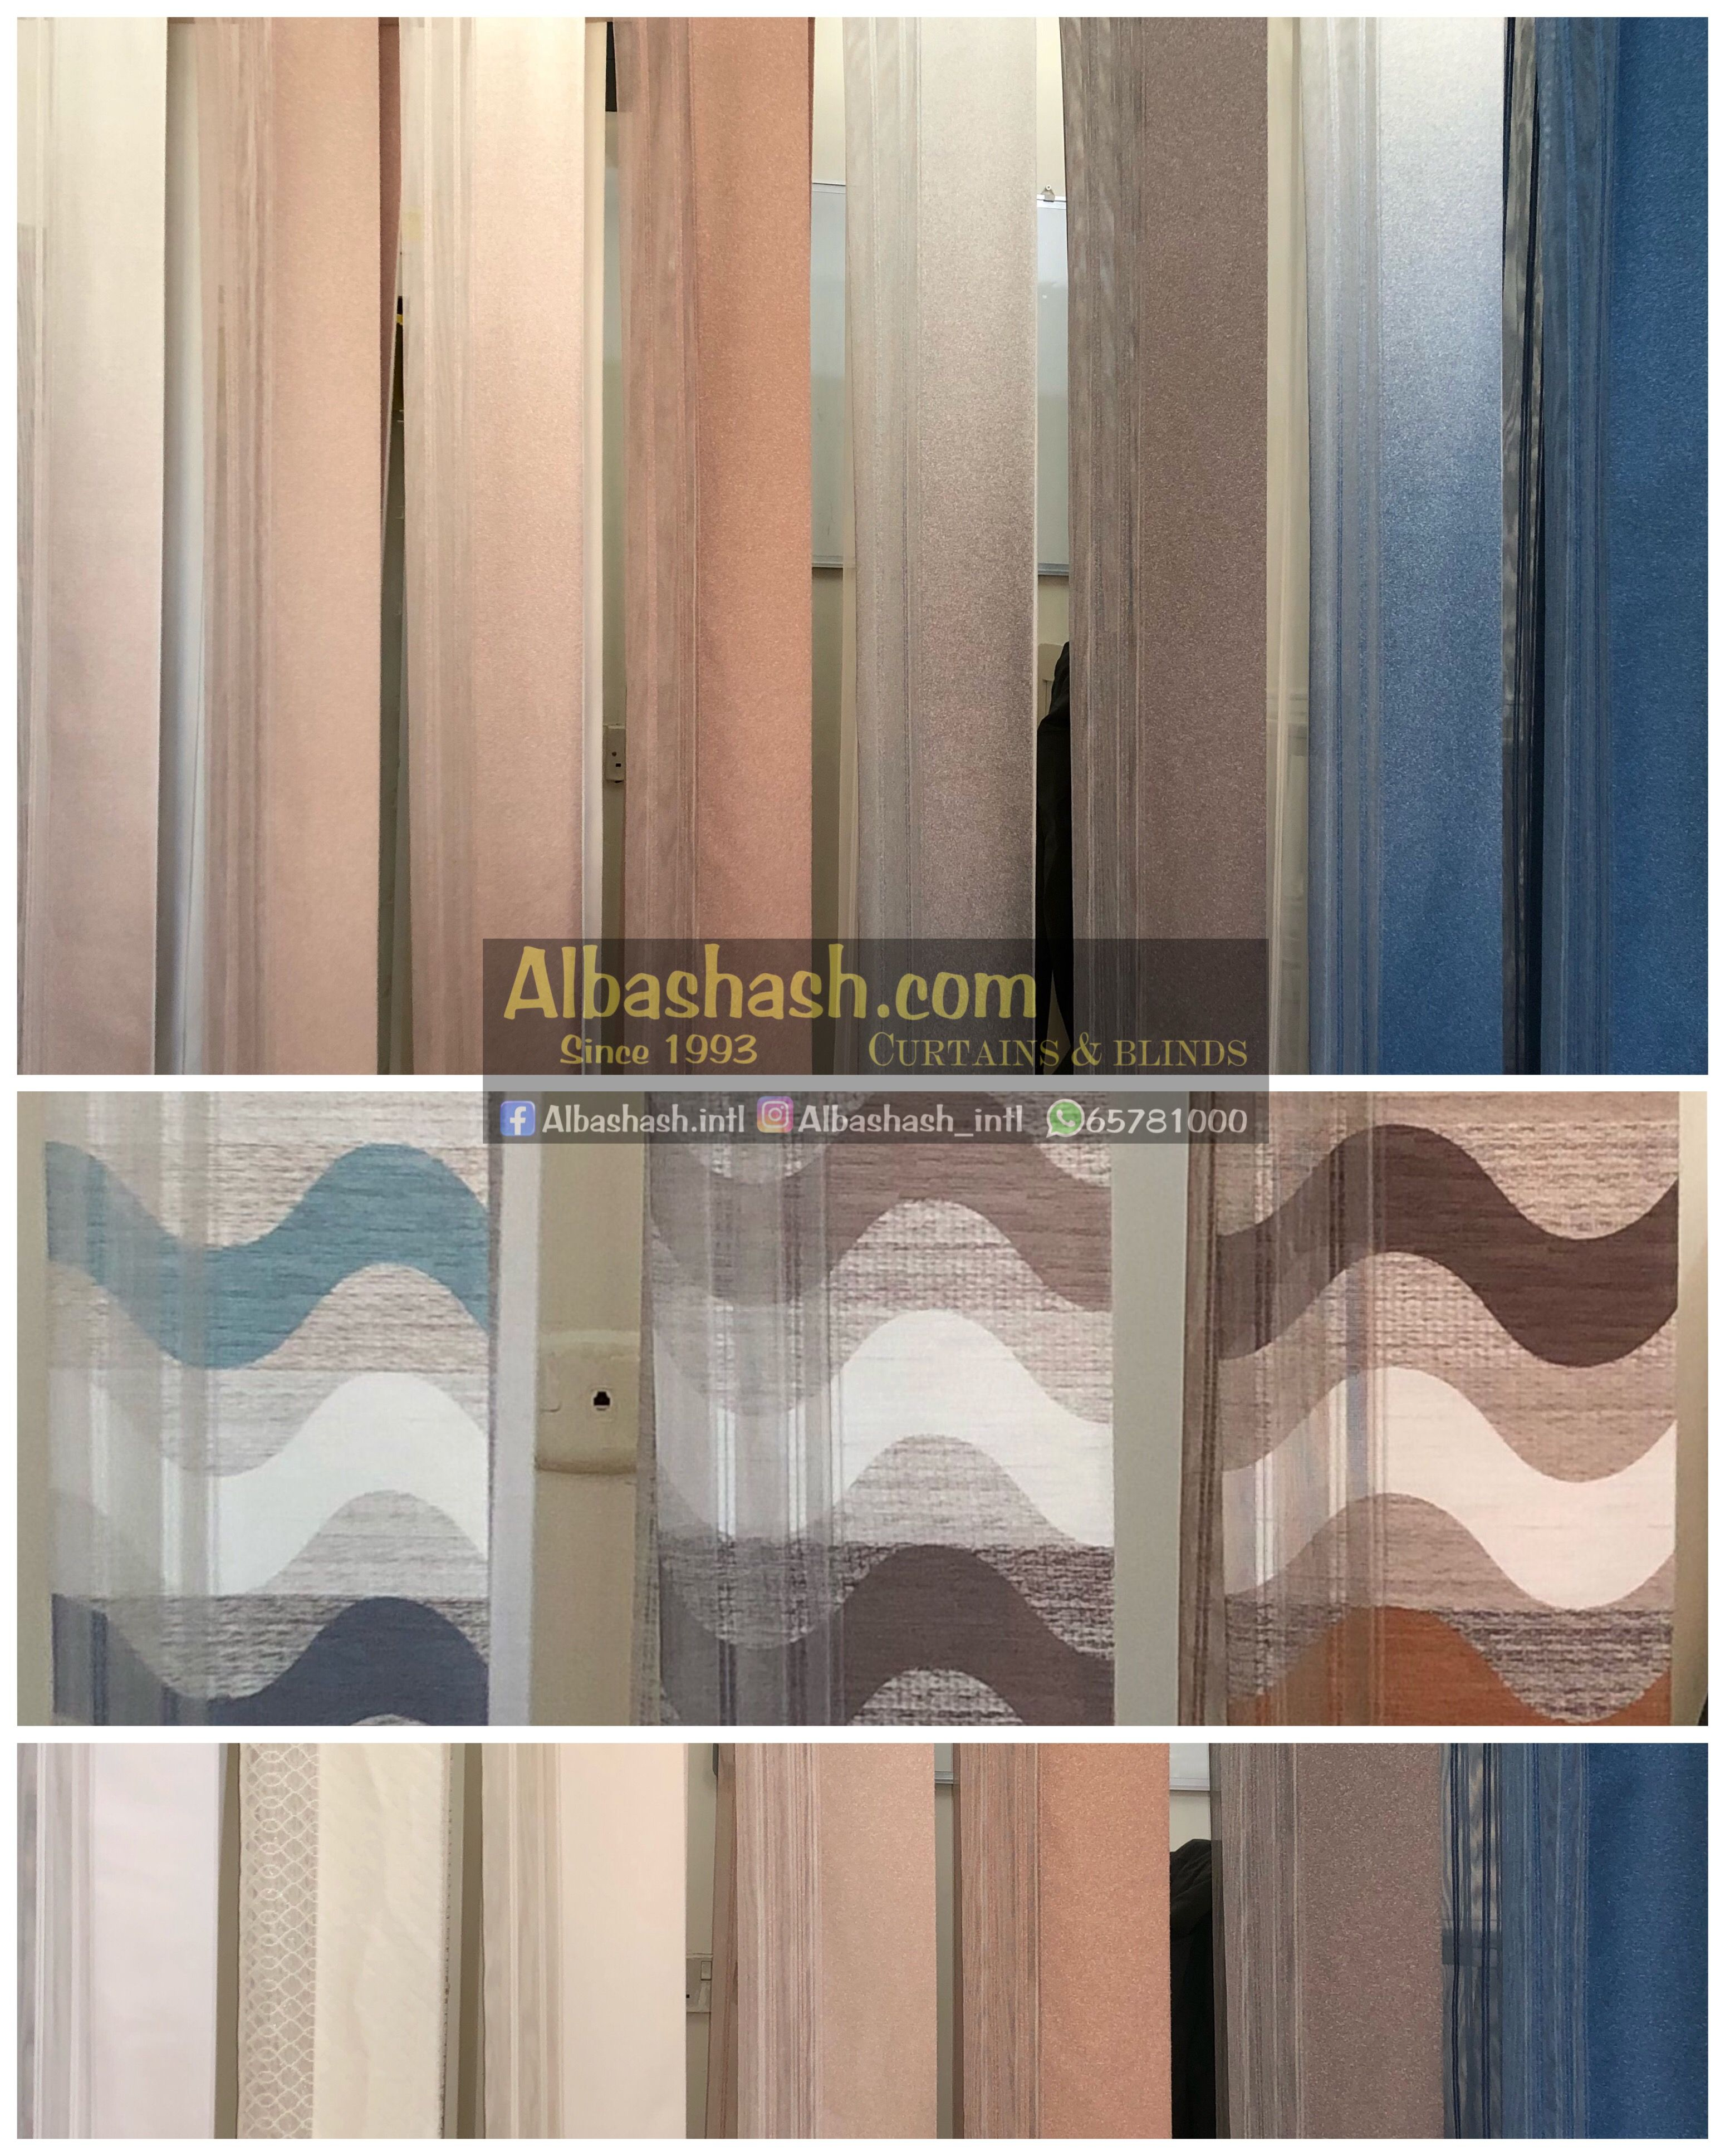 Albashash Co For Blinds Furniture Since 1993 Office Home